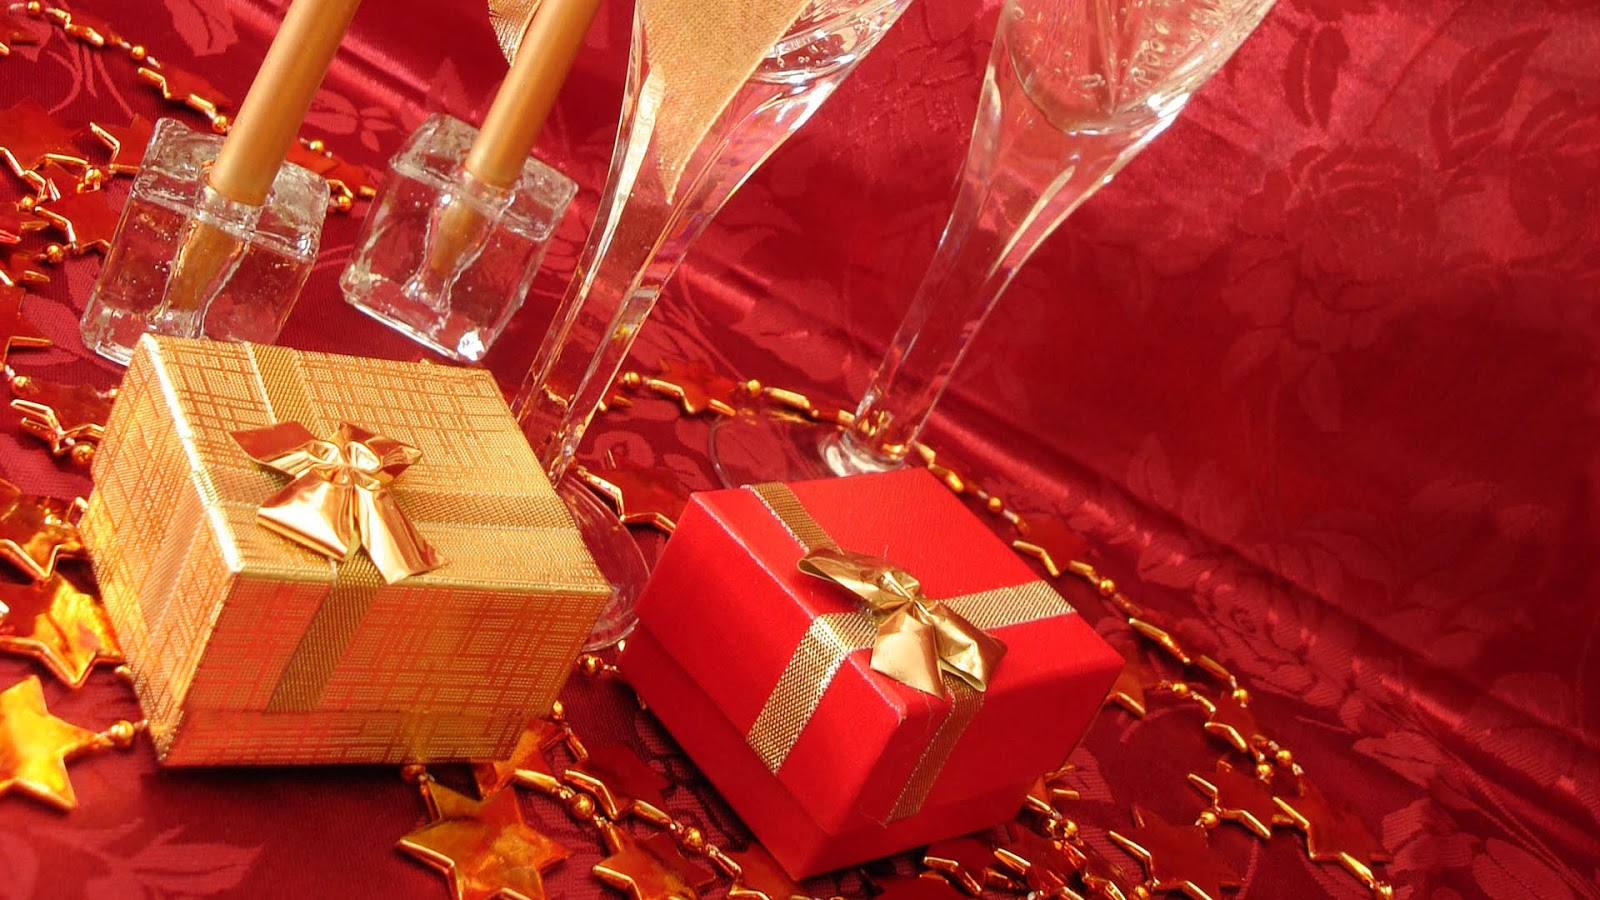 Love Gift Hd Wallpaper : New Year And Merry christmas Gifts HD Wallpapers,Pictures And Images - HD Wallpapers Blog